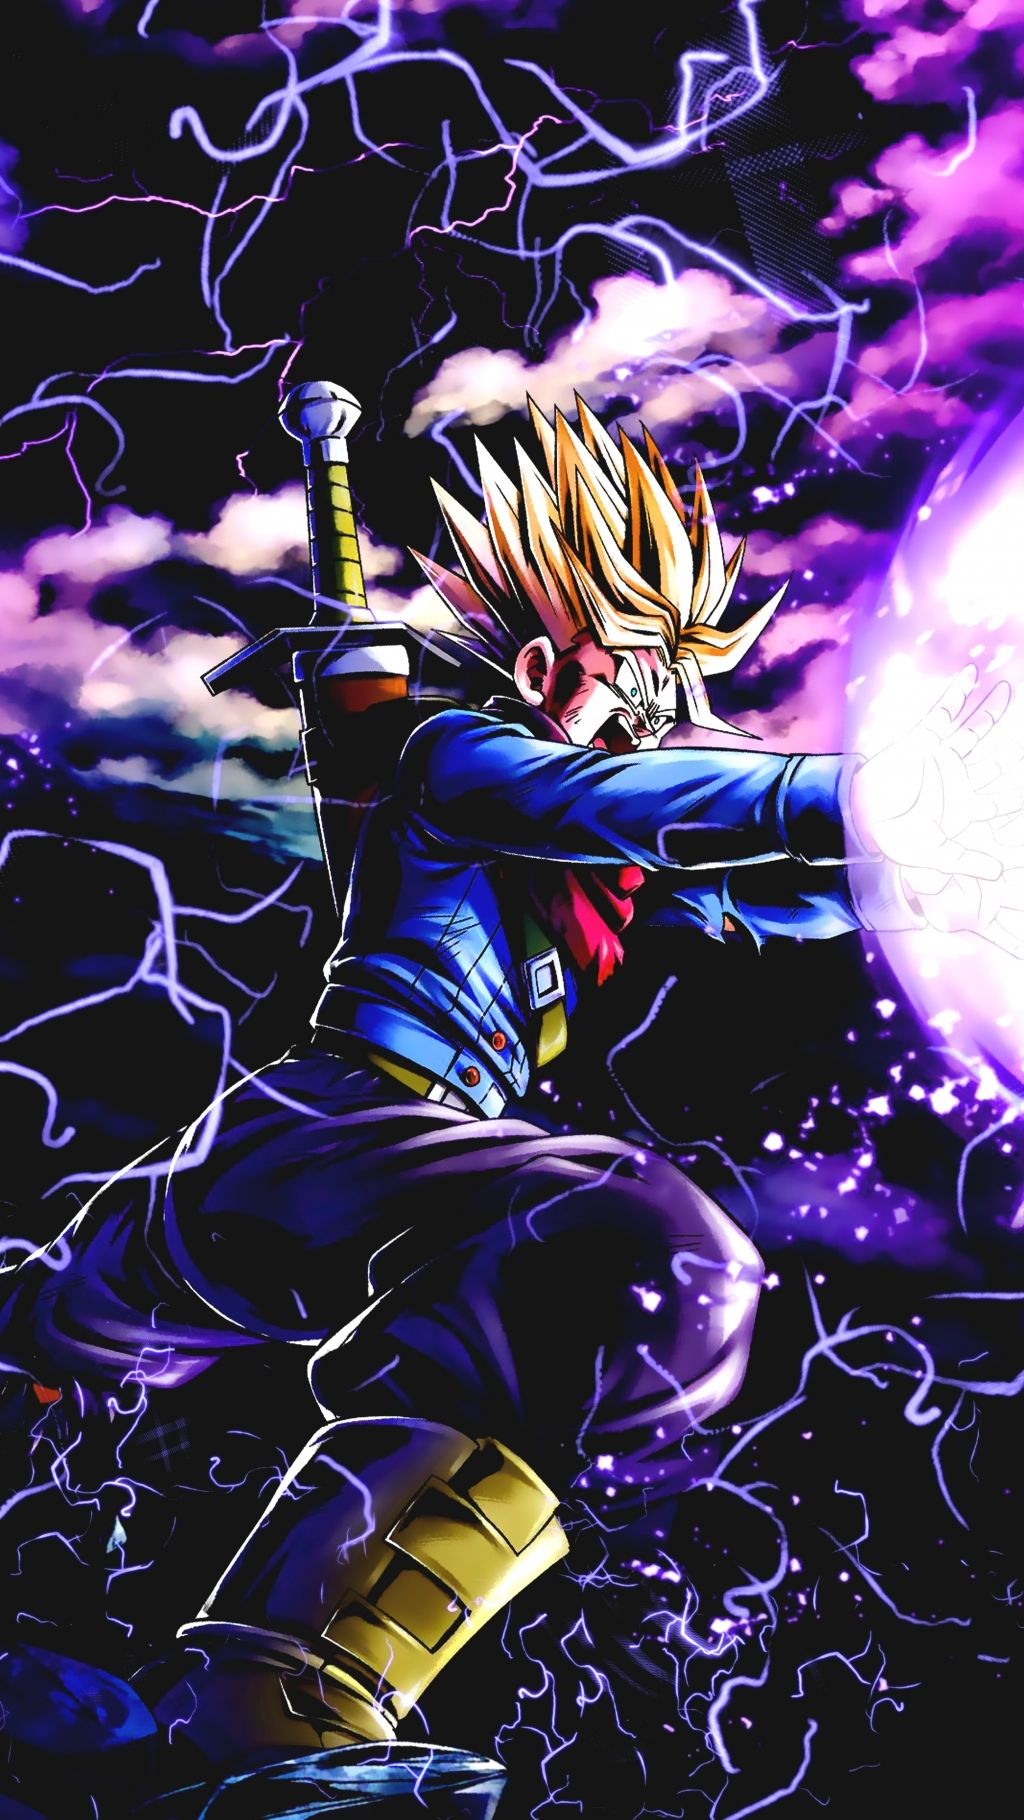 20 4k Wallpapers Of Dbz And Super For Phones Dragon Ball Wallpapers Dragon Ball Super Wallpapers Anime Dragon Ball Super